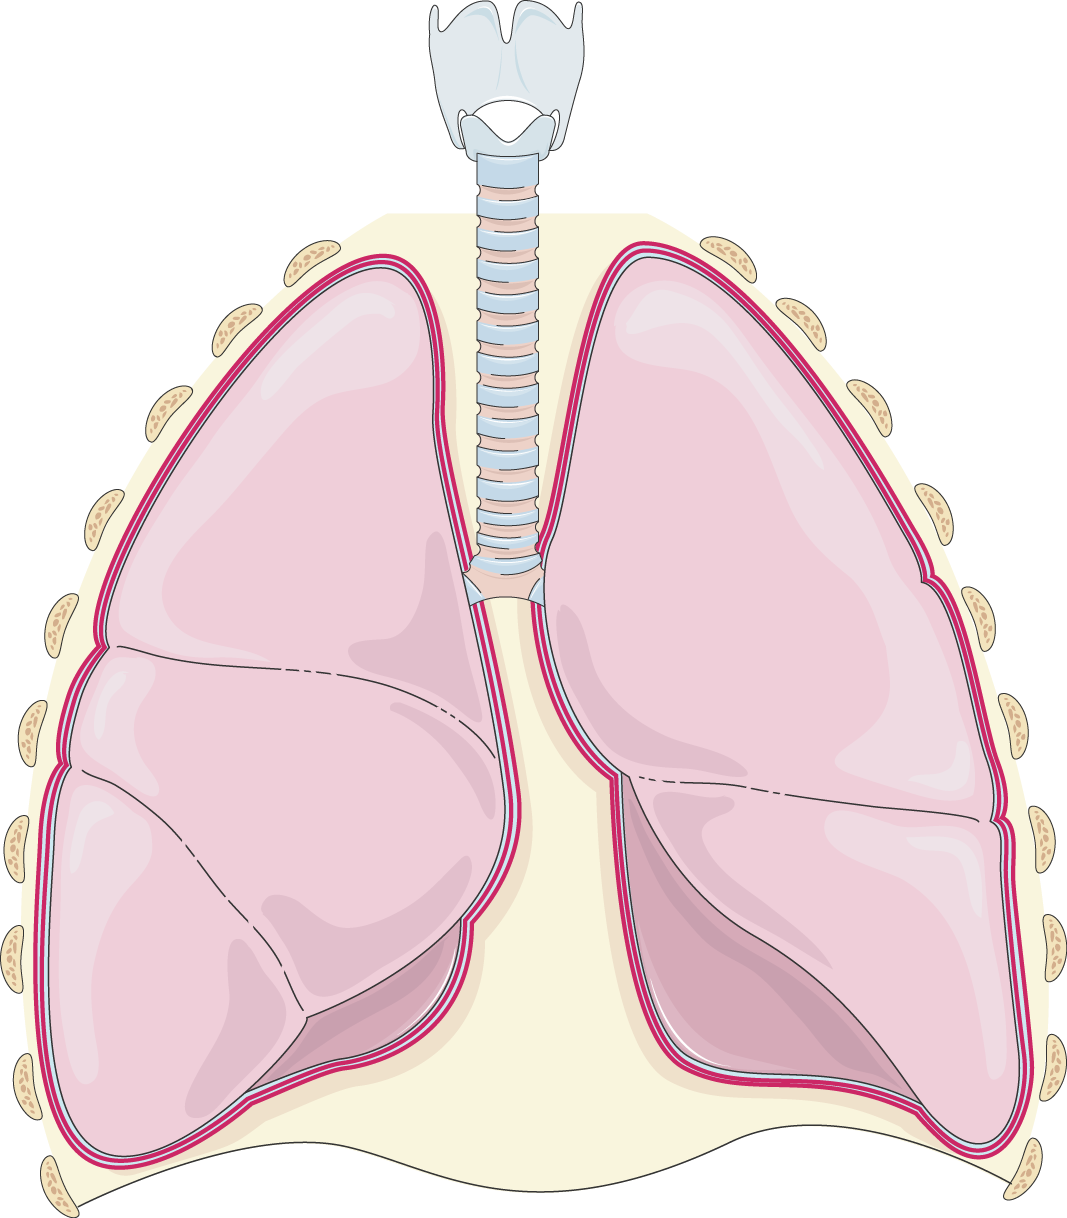 Servier medical art free. Lungs clipart pulmonary embolism